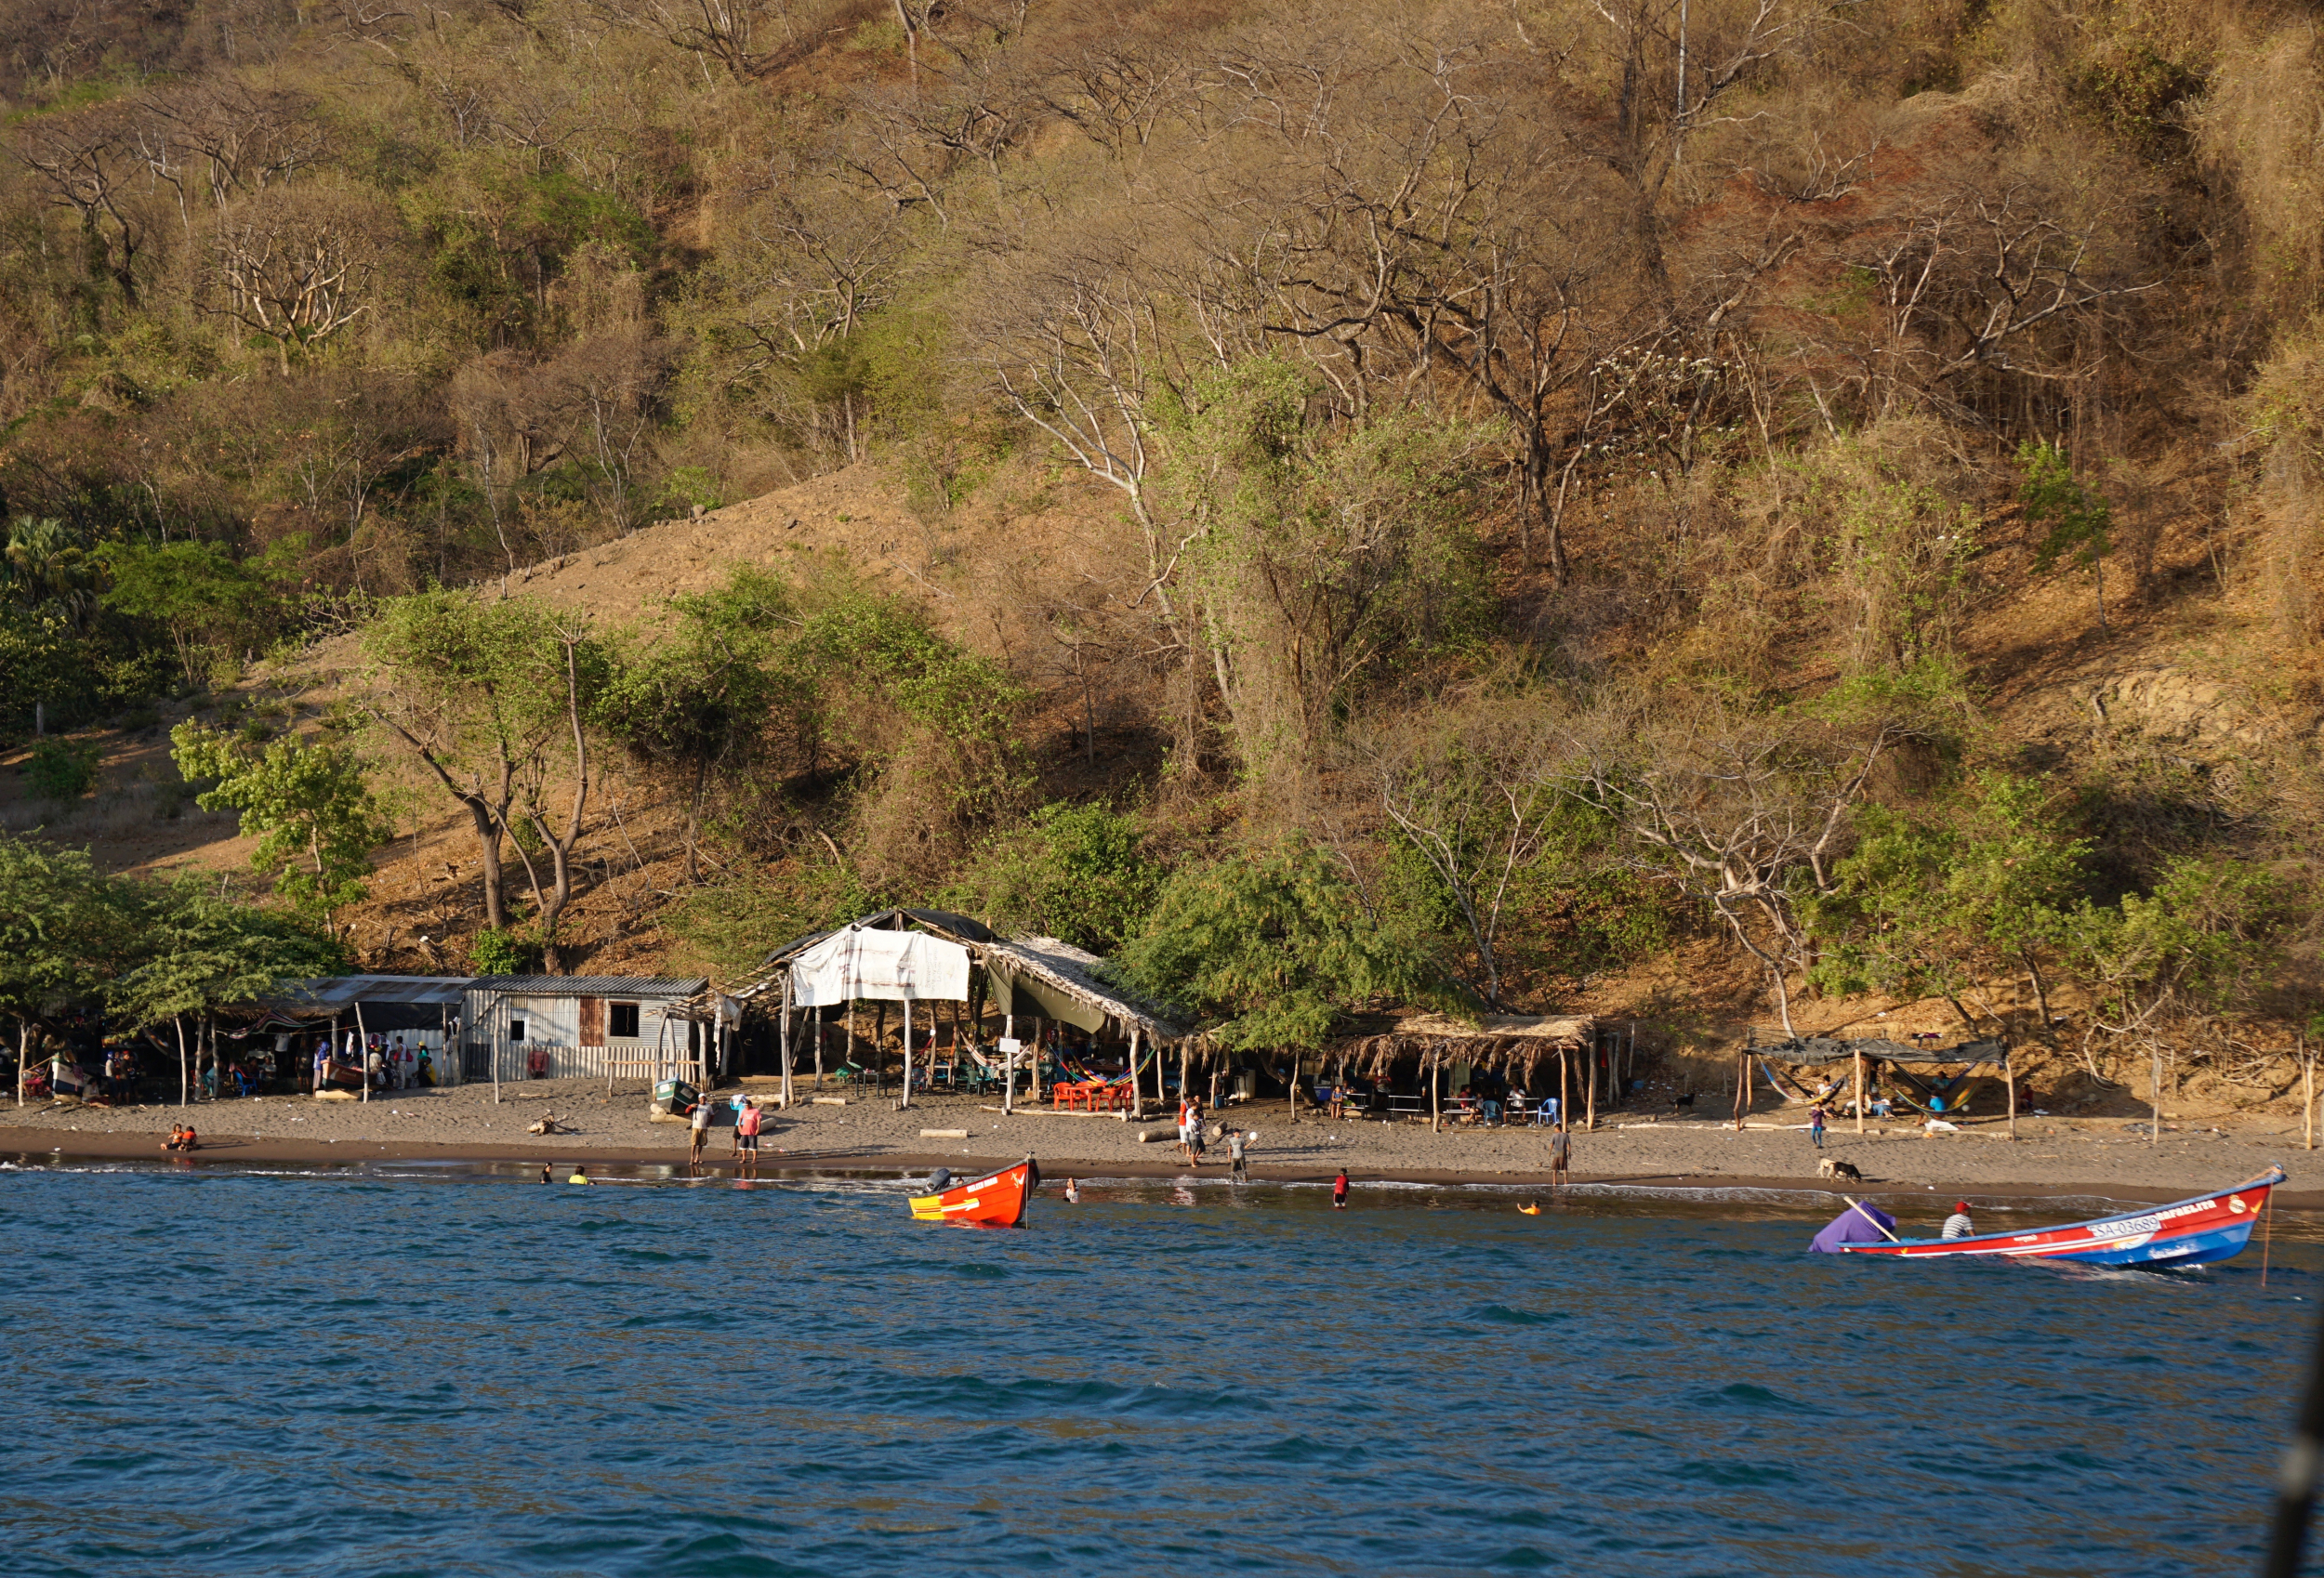 1.-El-Salvador-Bay...-Didnt-go-to-shore-just-slept-for-the-night-on-our-way-to-Nicaragua.jpg